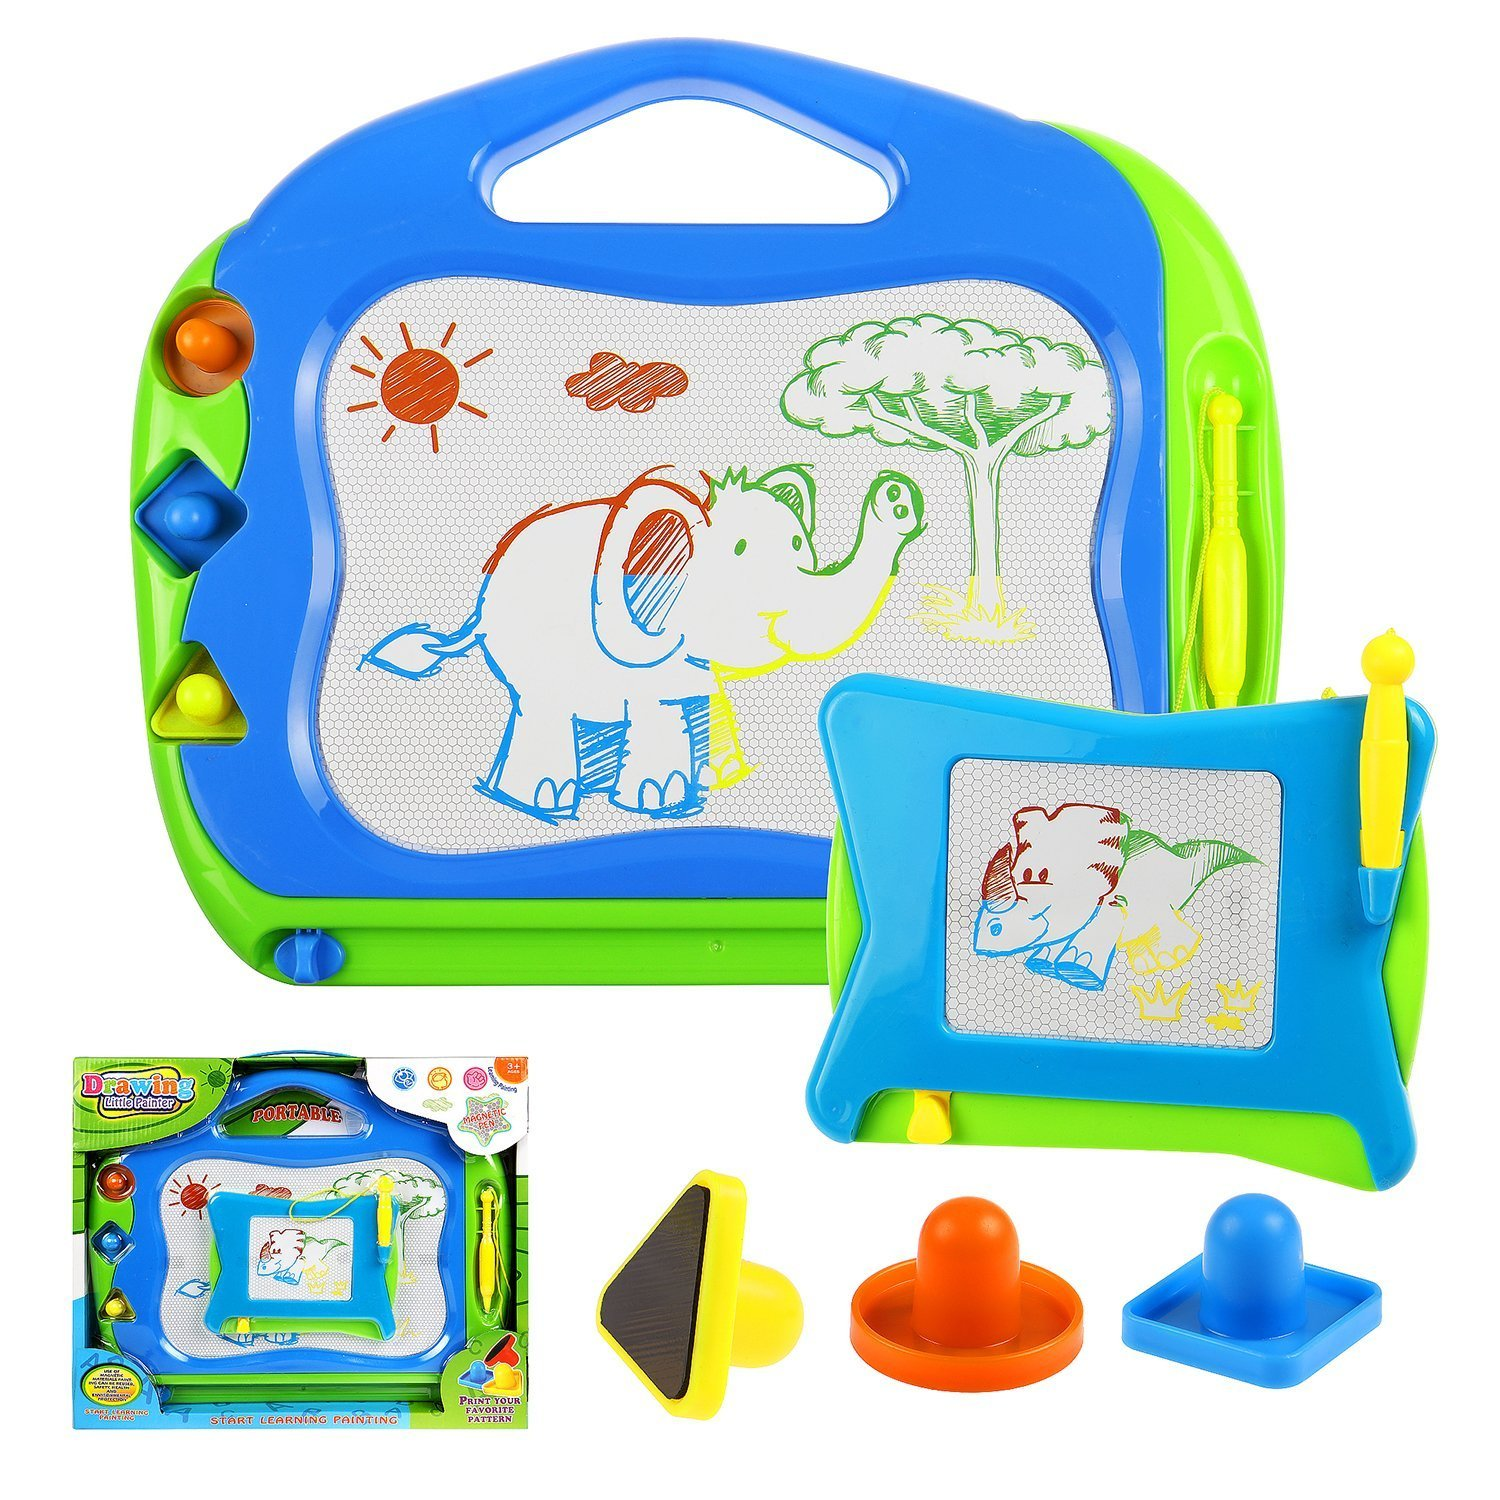 Toyssa 2 Magnetic Drawing Boards with Multi-Colors Drawing Areas Kids Drawing Doodle Board Erasable Writing Sketch Pad Travel games Educational Toys for Kids